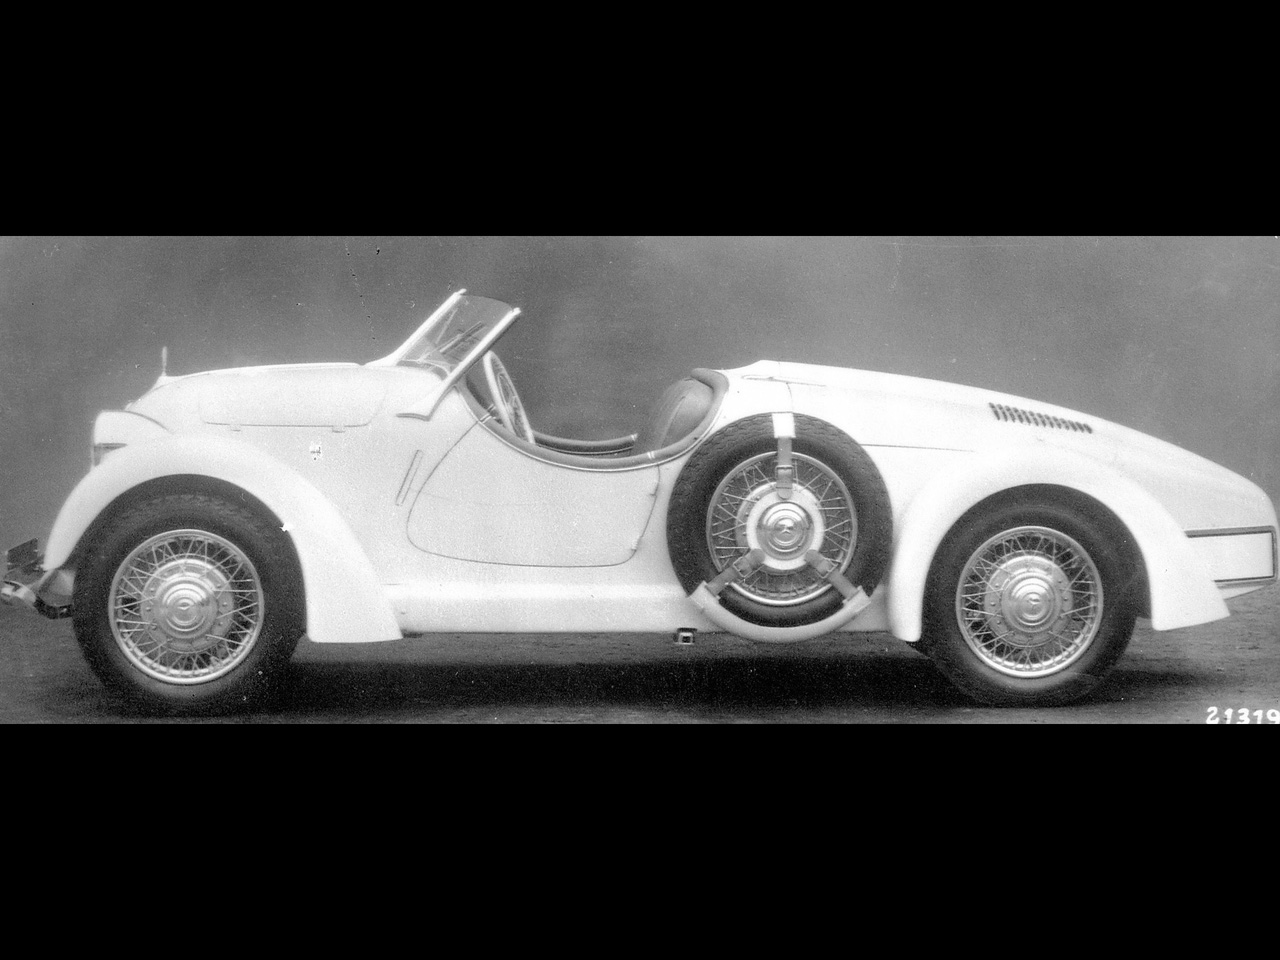 Ernie 39 s place mercedes benz 150 roadster 1935 for Mercedes benz 150